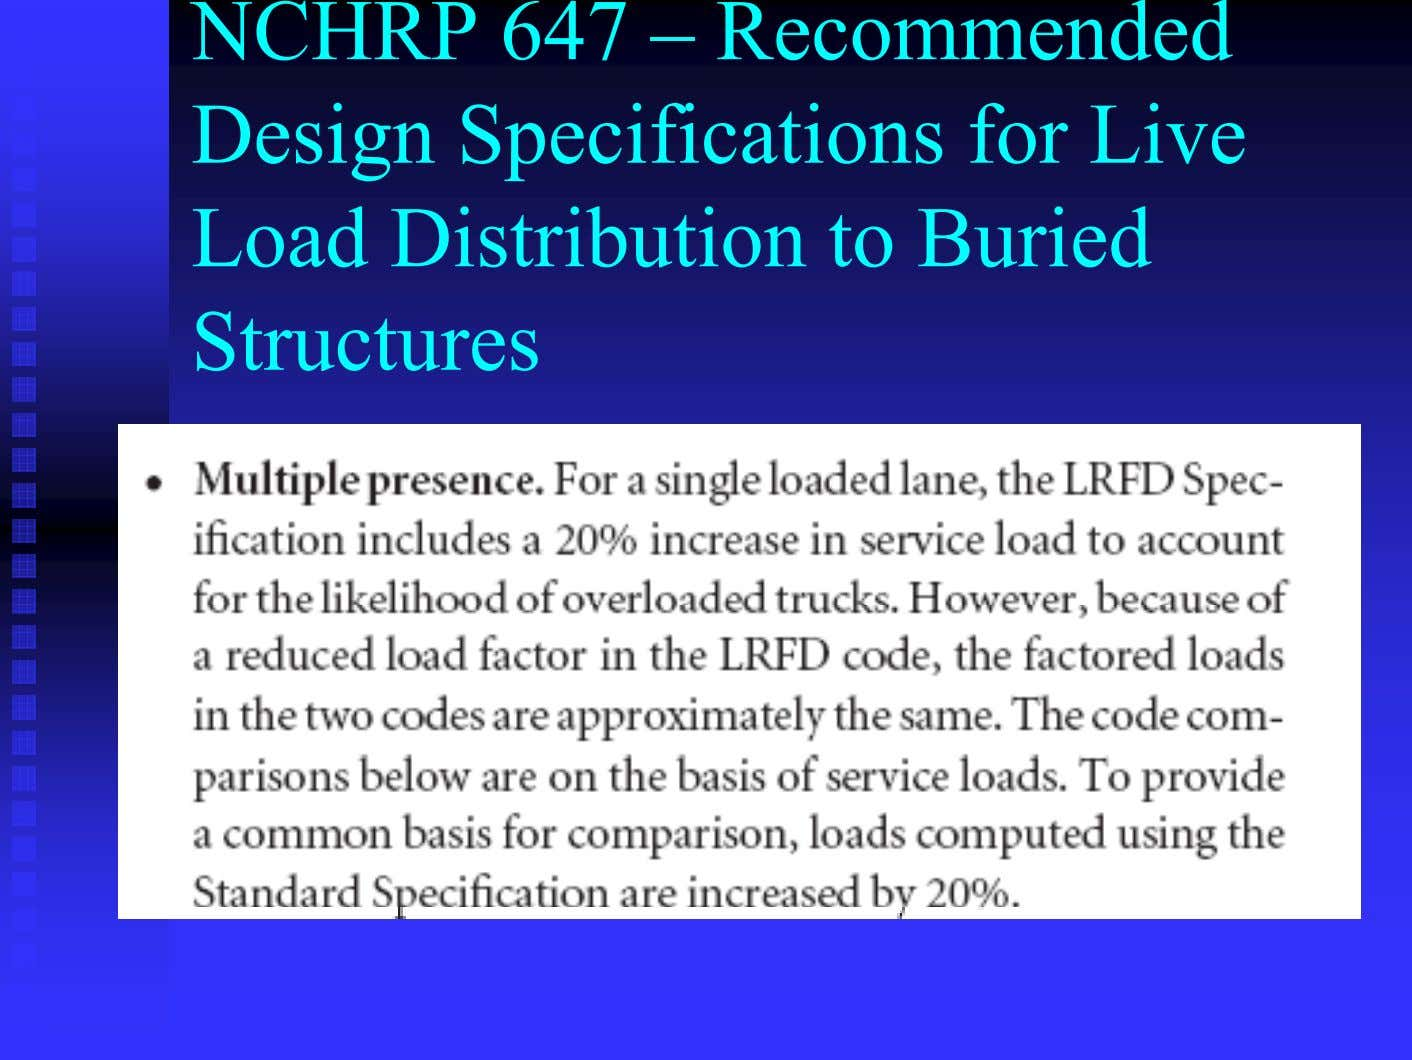 NCHRP 647 – Recommended Design Specifications for Live Load Distribution to Buried Structures